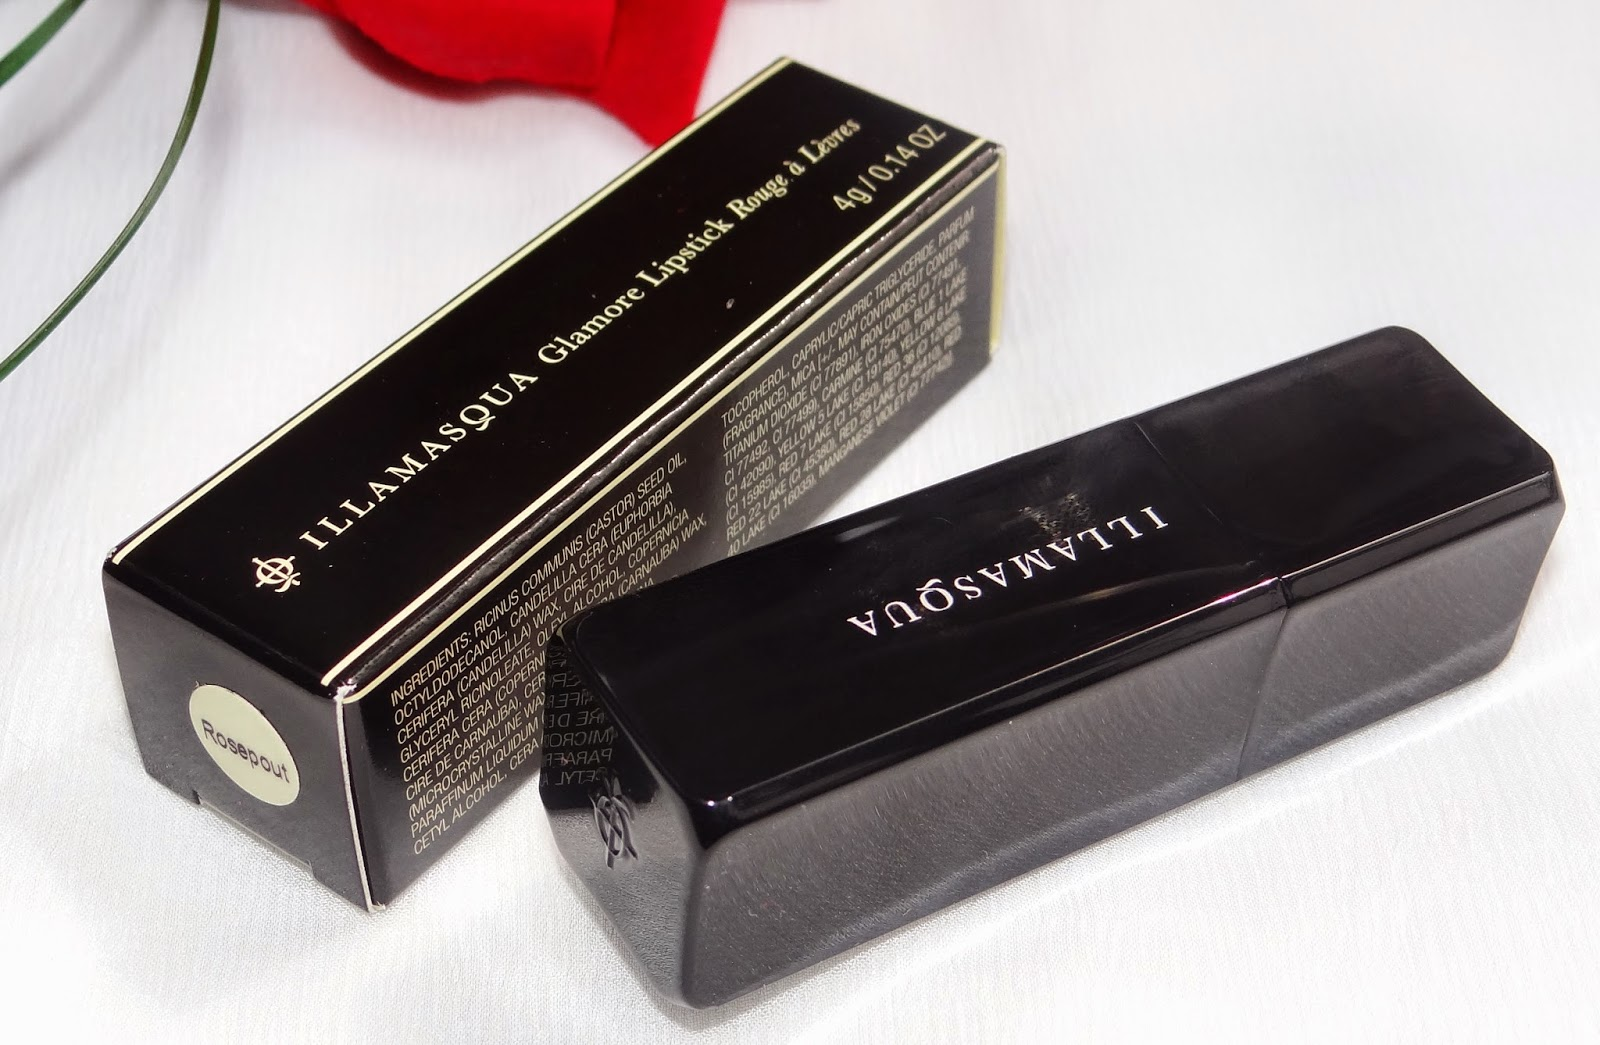 Illamasqua Glamore lipsticks Review and Swatches